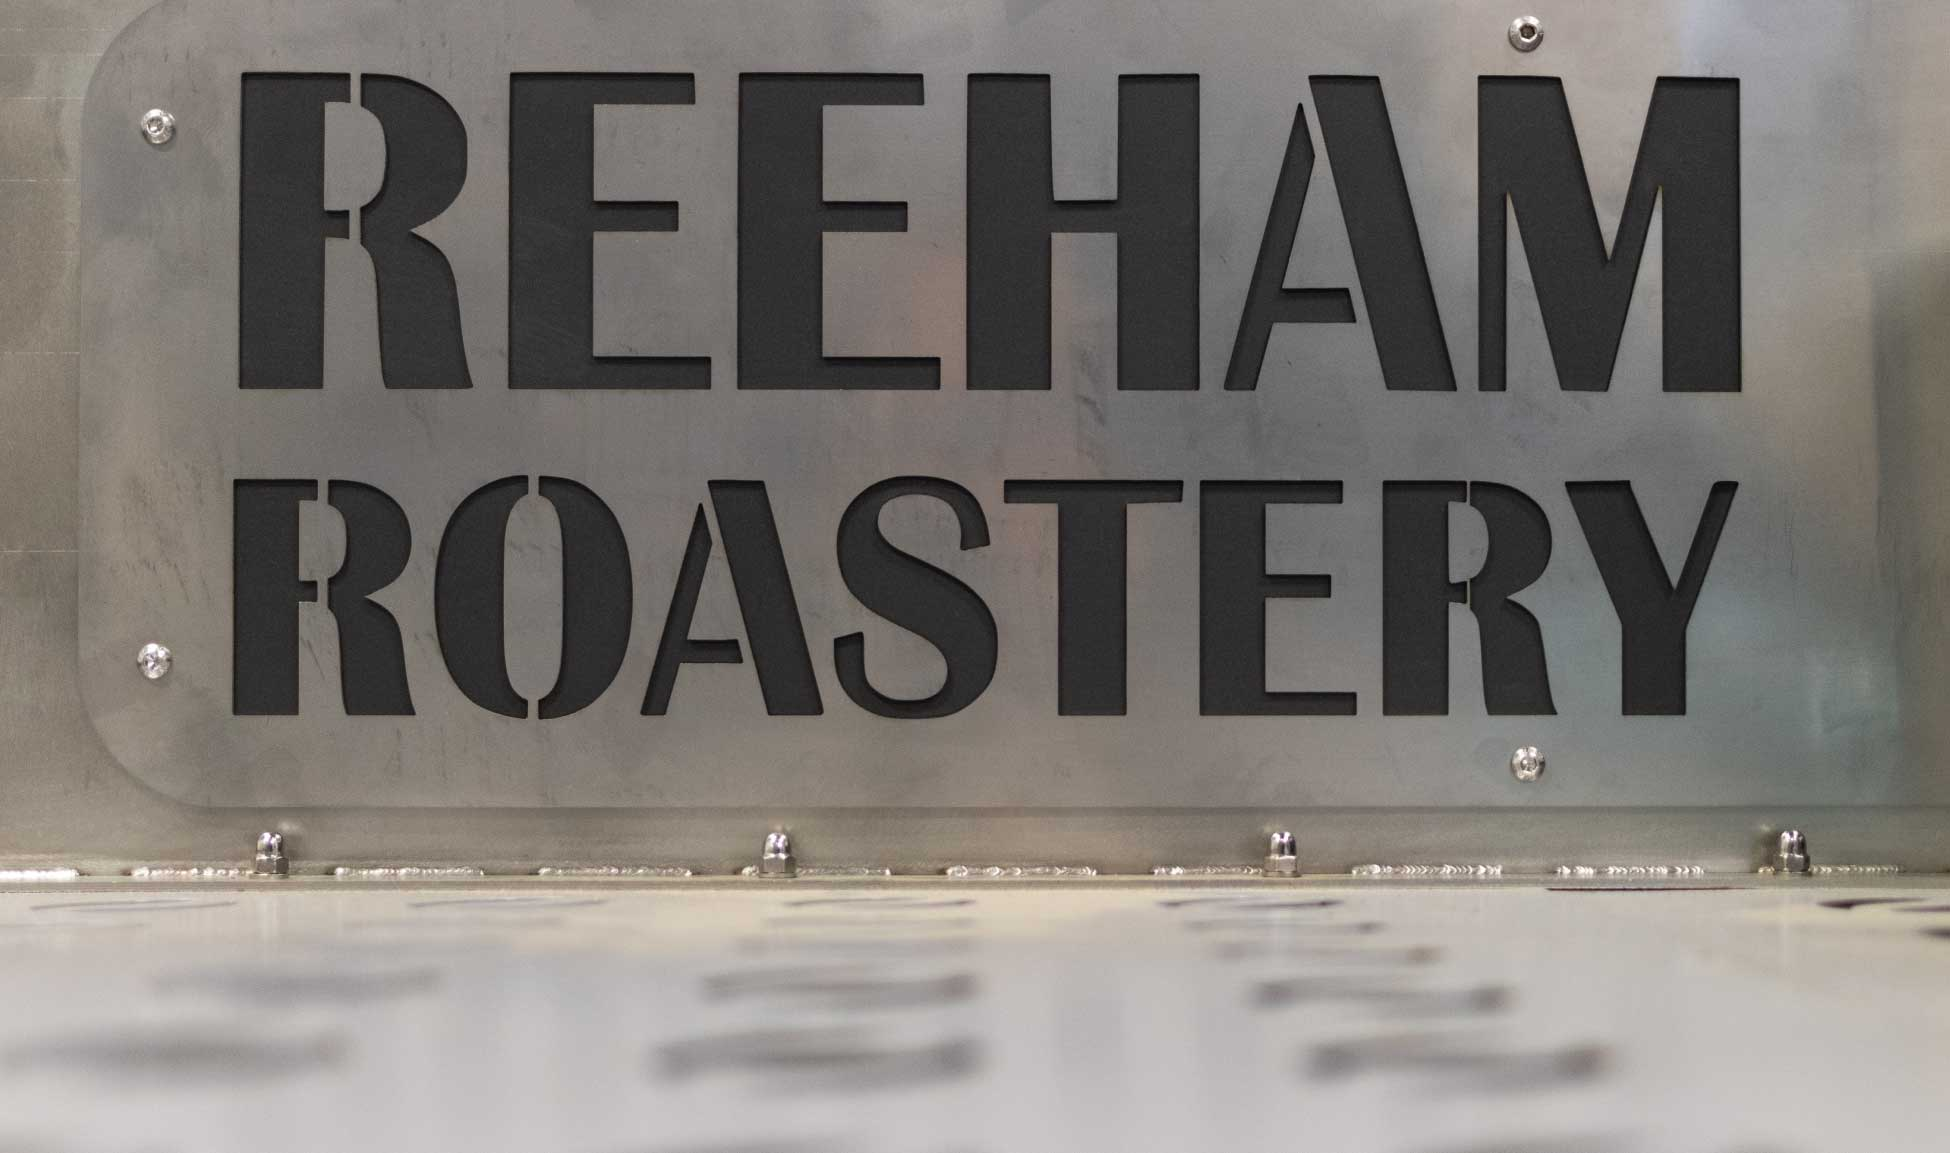 Specialty coffee from the Reeham roastery